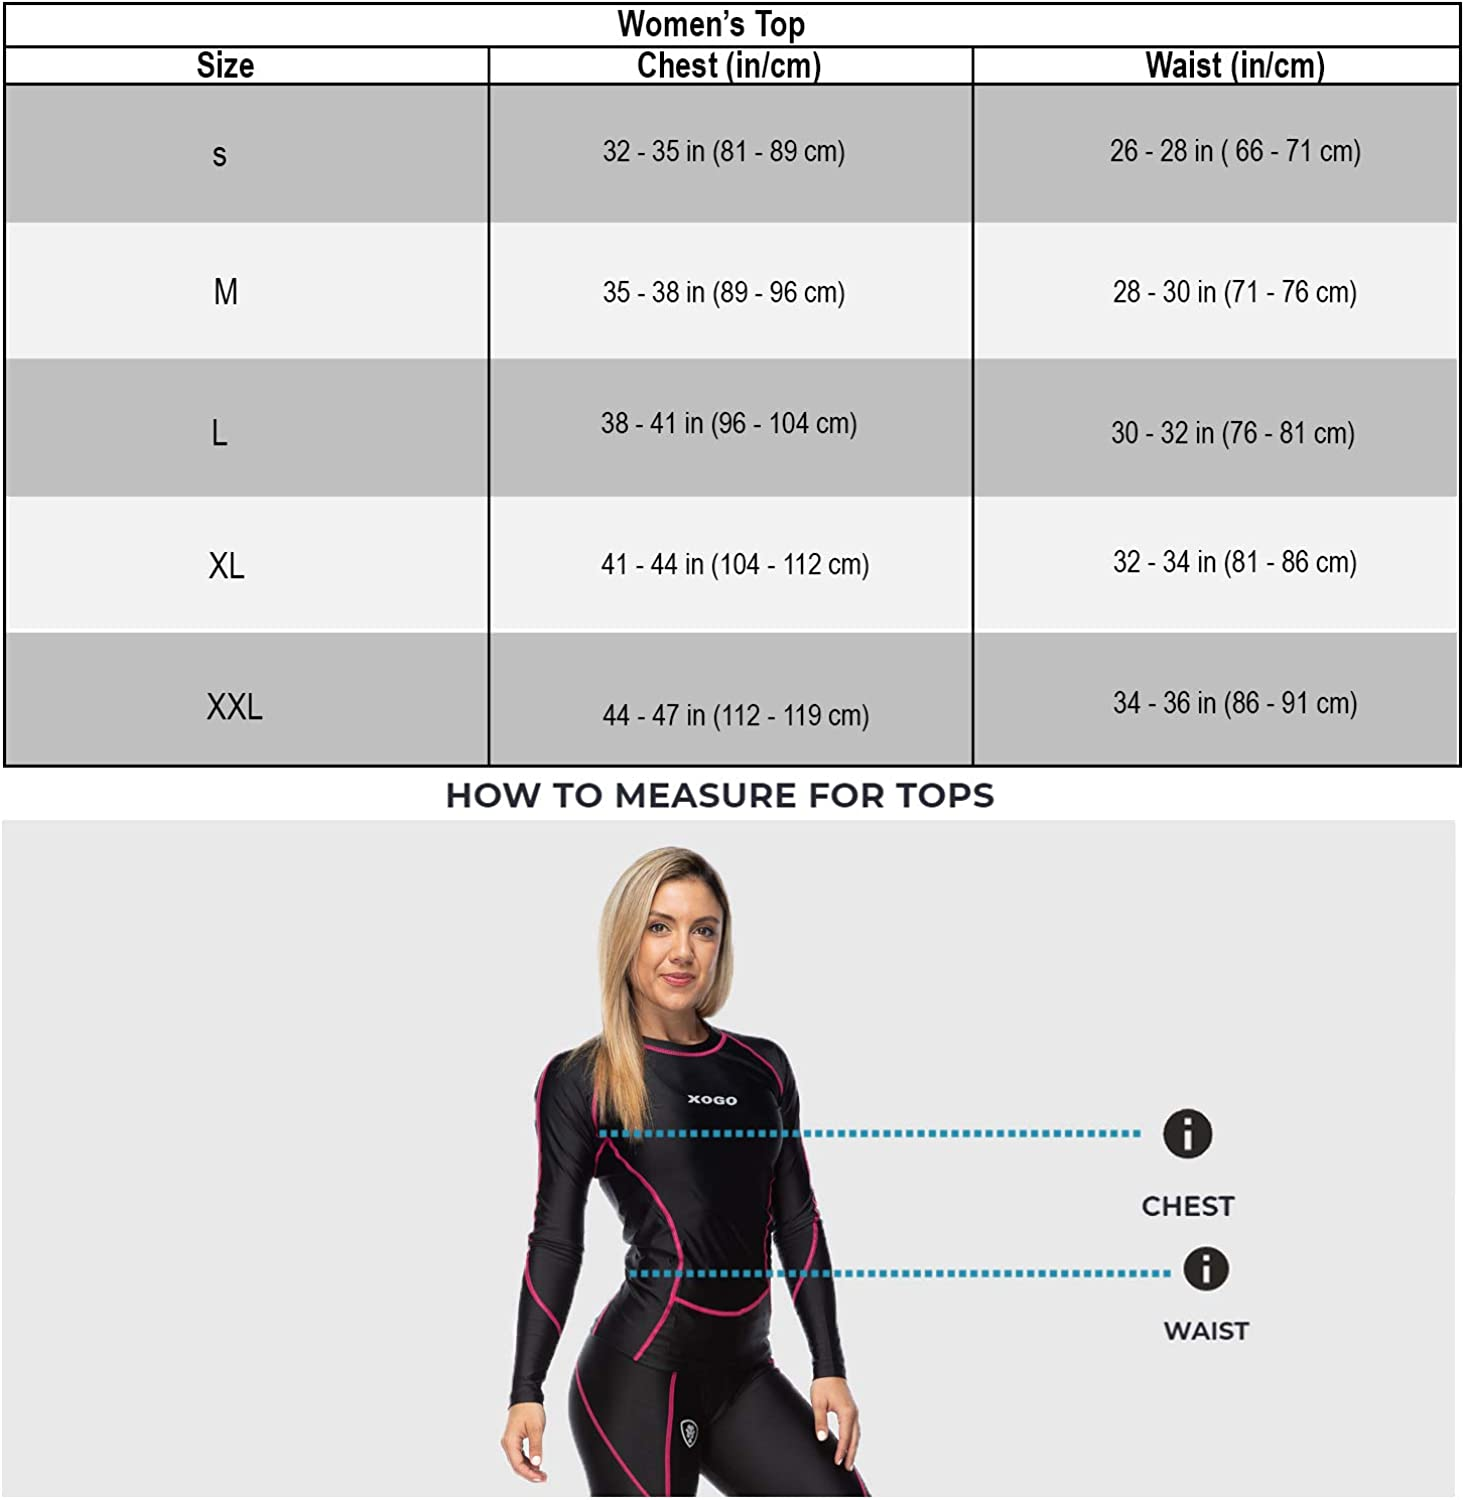 Long Sleeve Compression Tops for Women XOGO Womens Compression Top Base Layers for All Season UV Sun Protection and 4 Way Stretch Sports Shirts for Running Cycling and Yoga